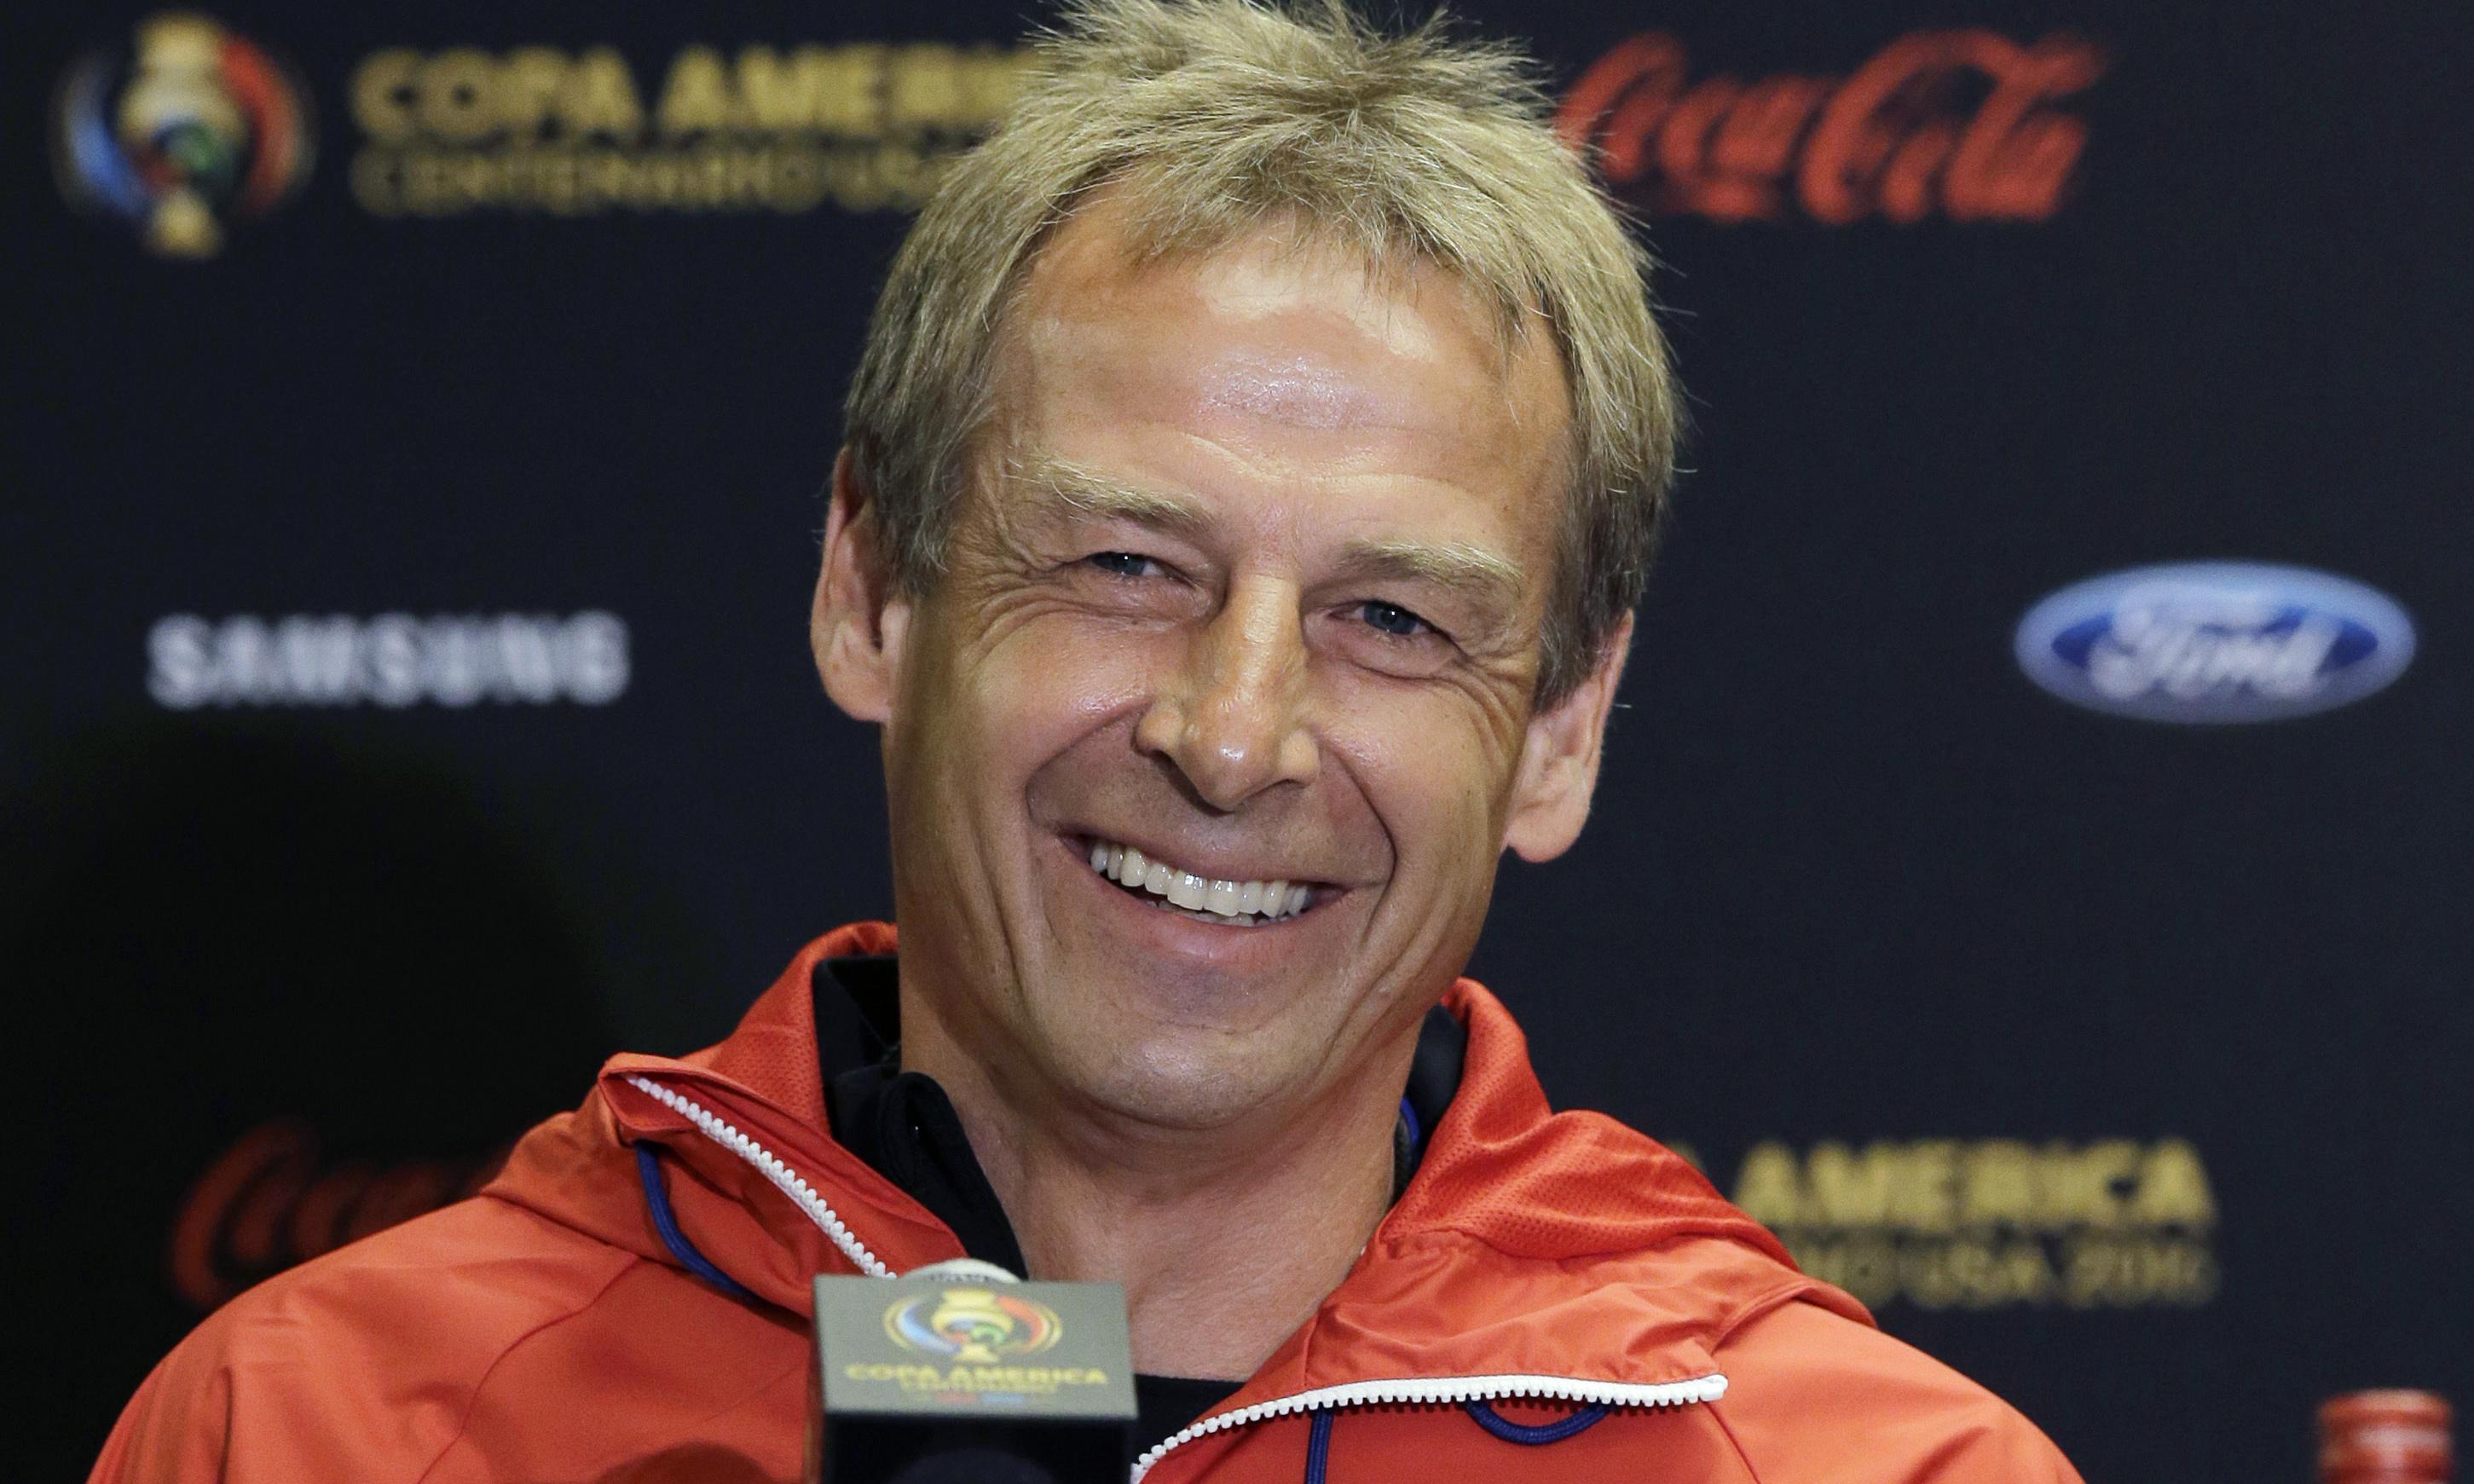 Klinsmann received $3.35m settlement after he was fired by US Soccer